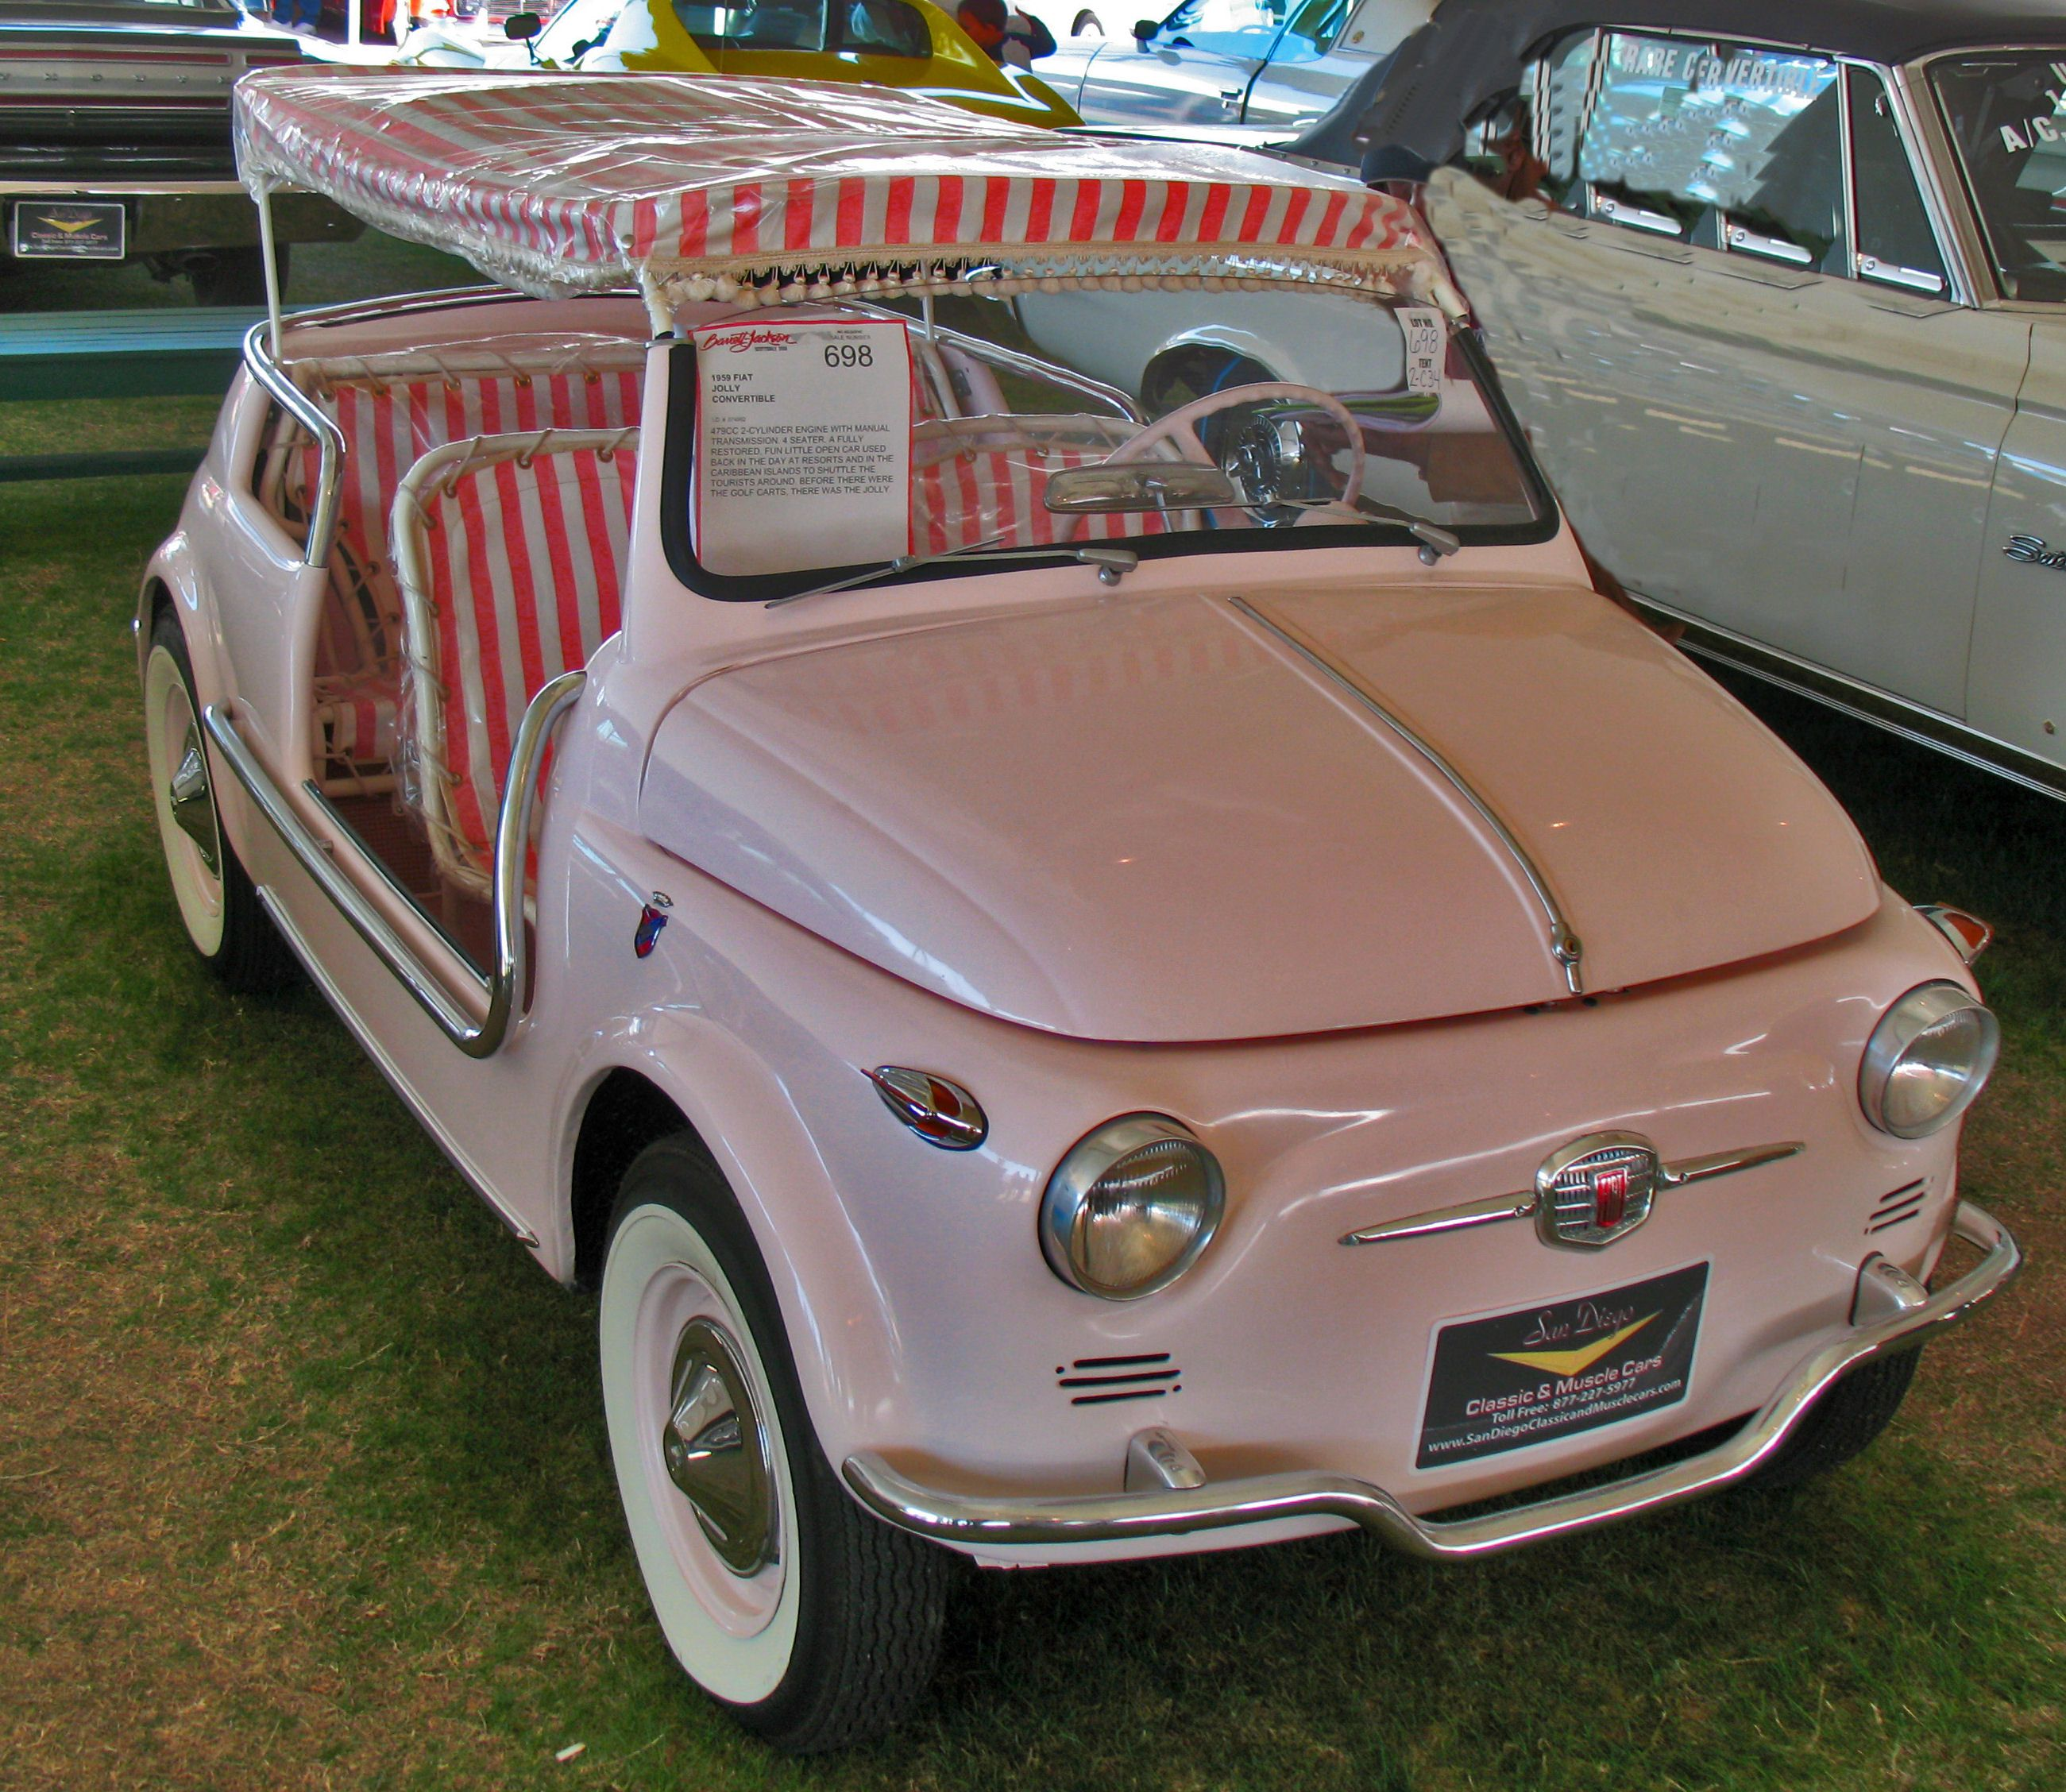 sale details photo vehicle for fiat jolly